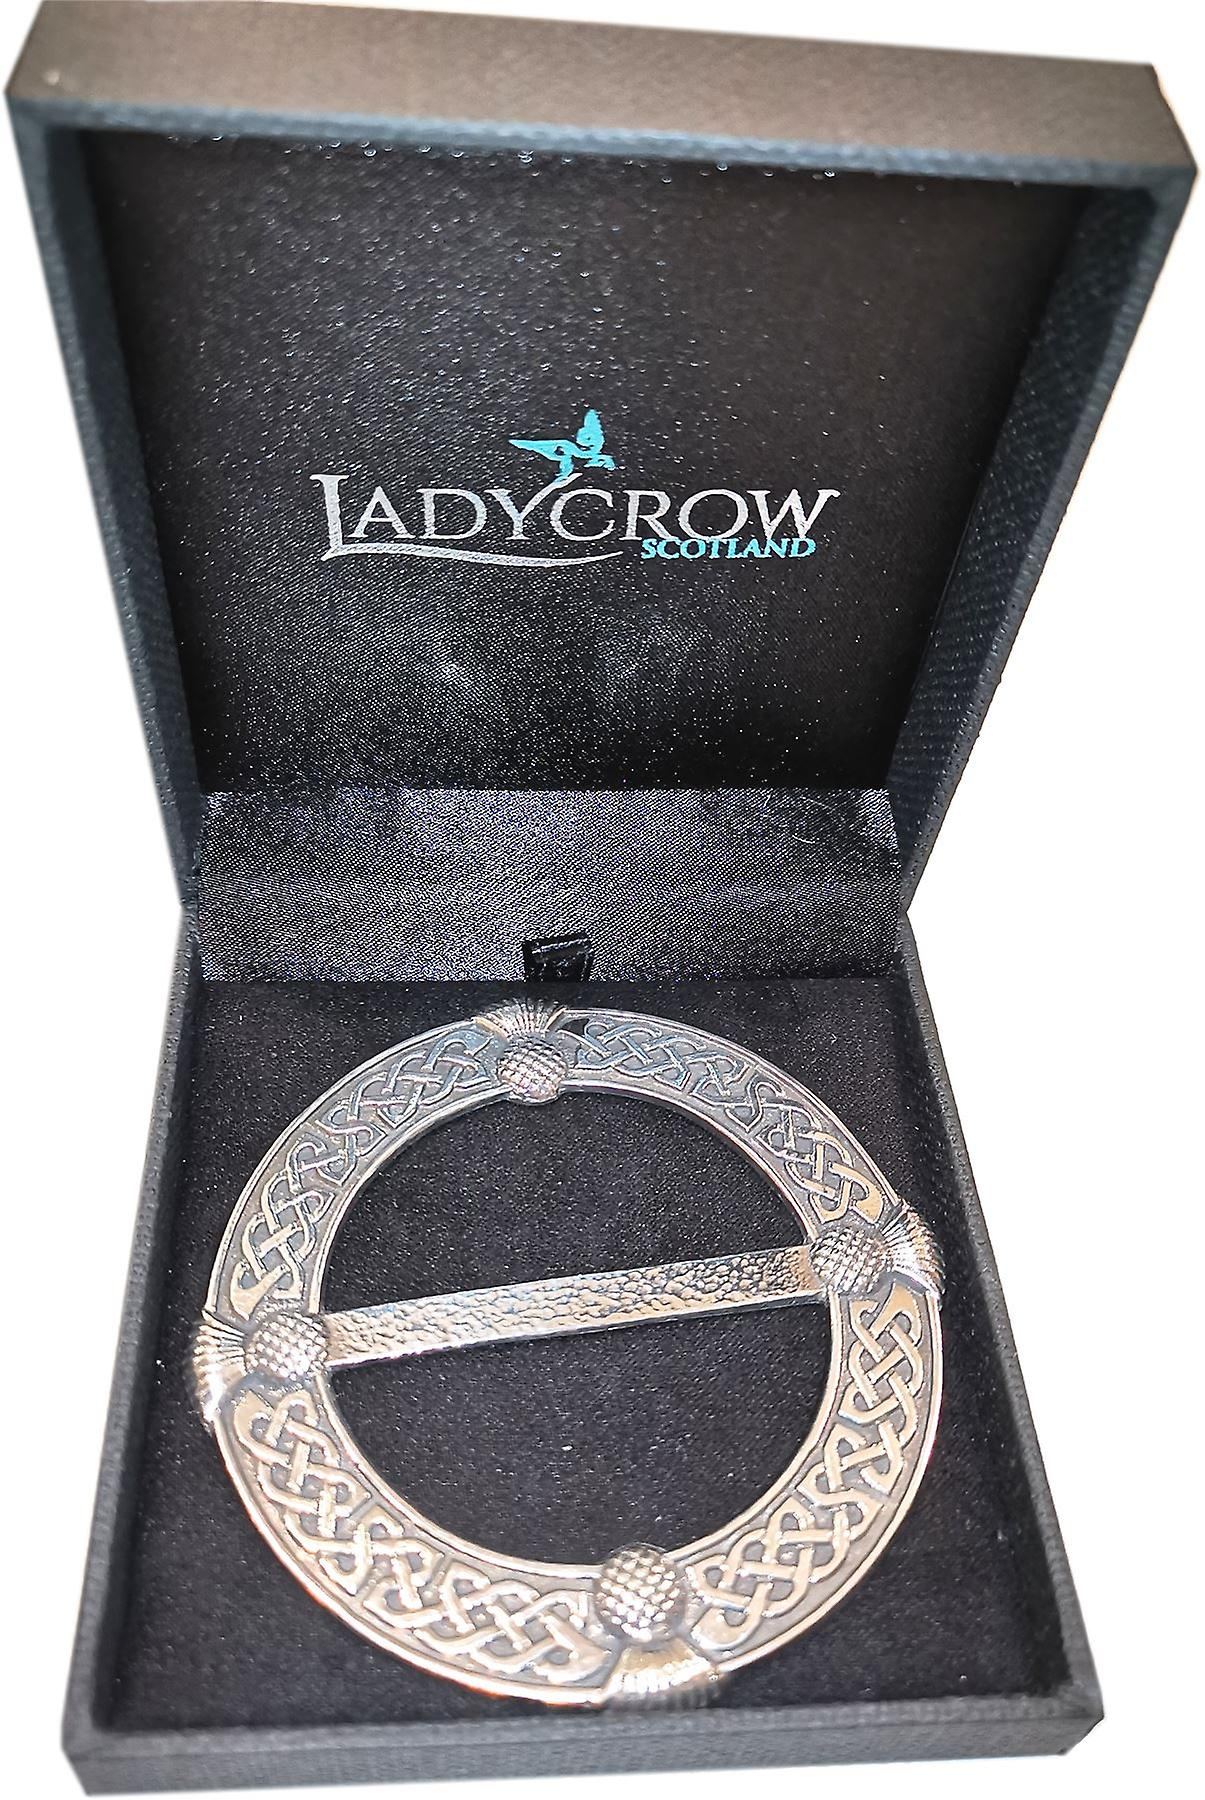 Pewter Thistle Large Scarf Ring by Ladycrow